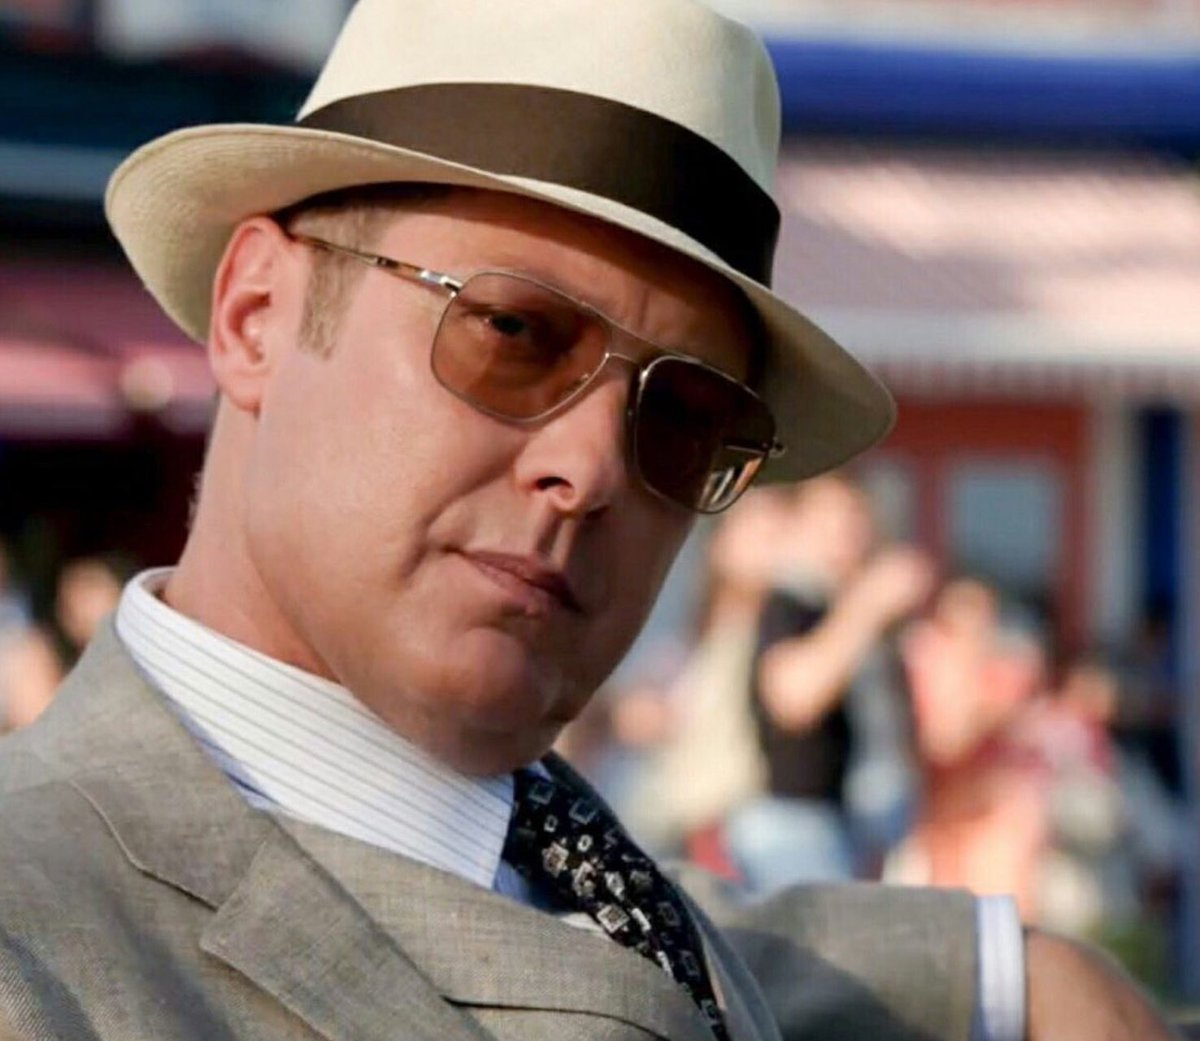 TY. Have a great day too, dearie  looking forward to  #RedFriday   #TheBlacklist<br>http://pic.twitter.com/IQGBpztmgw